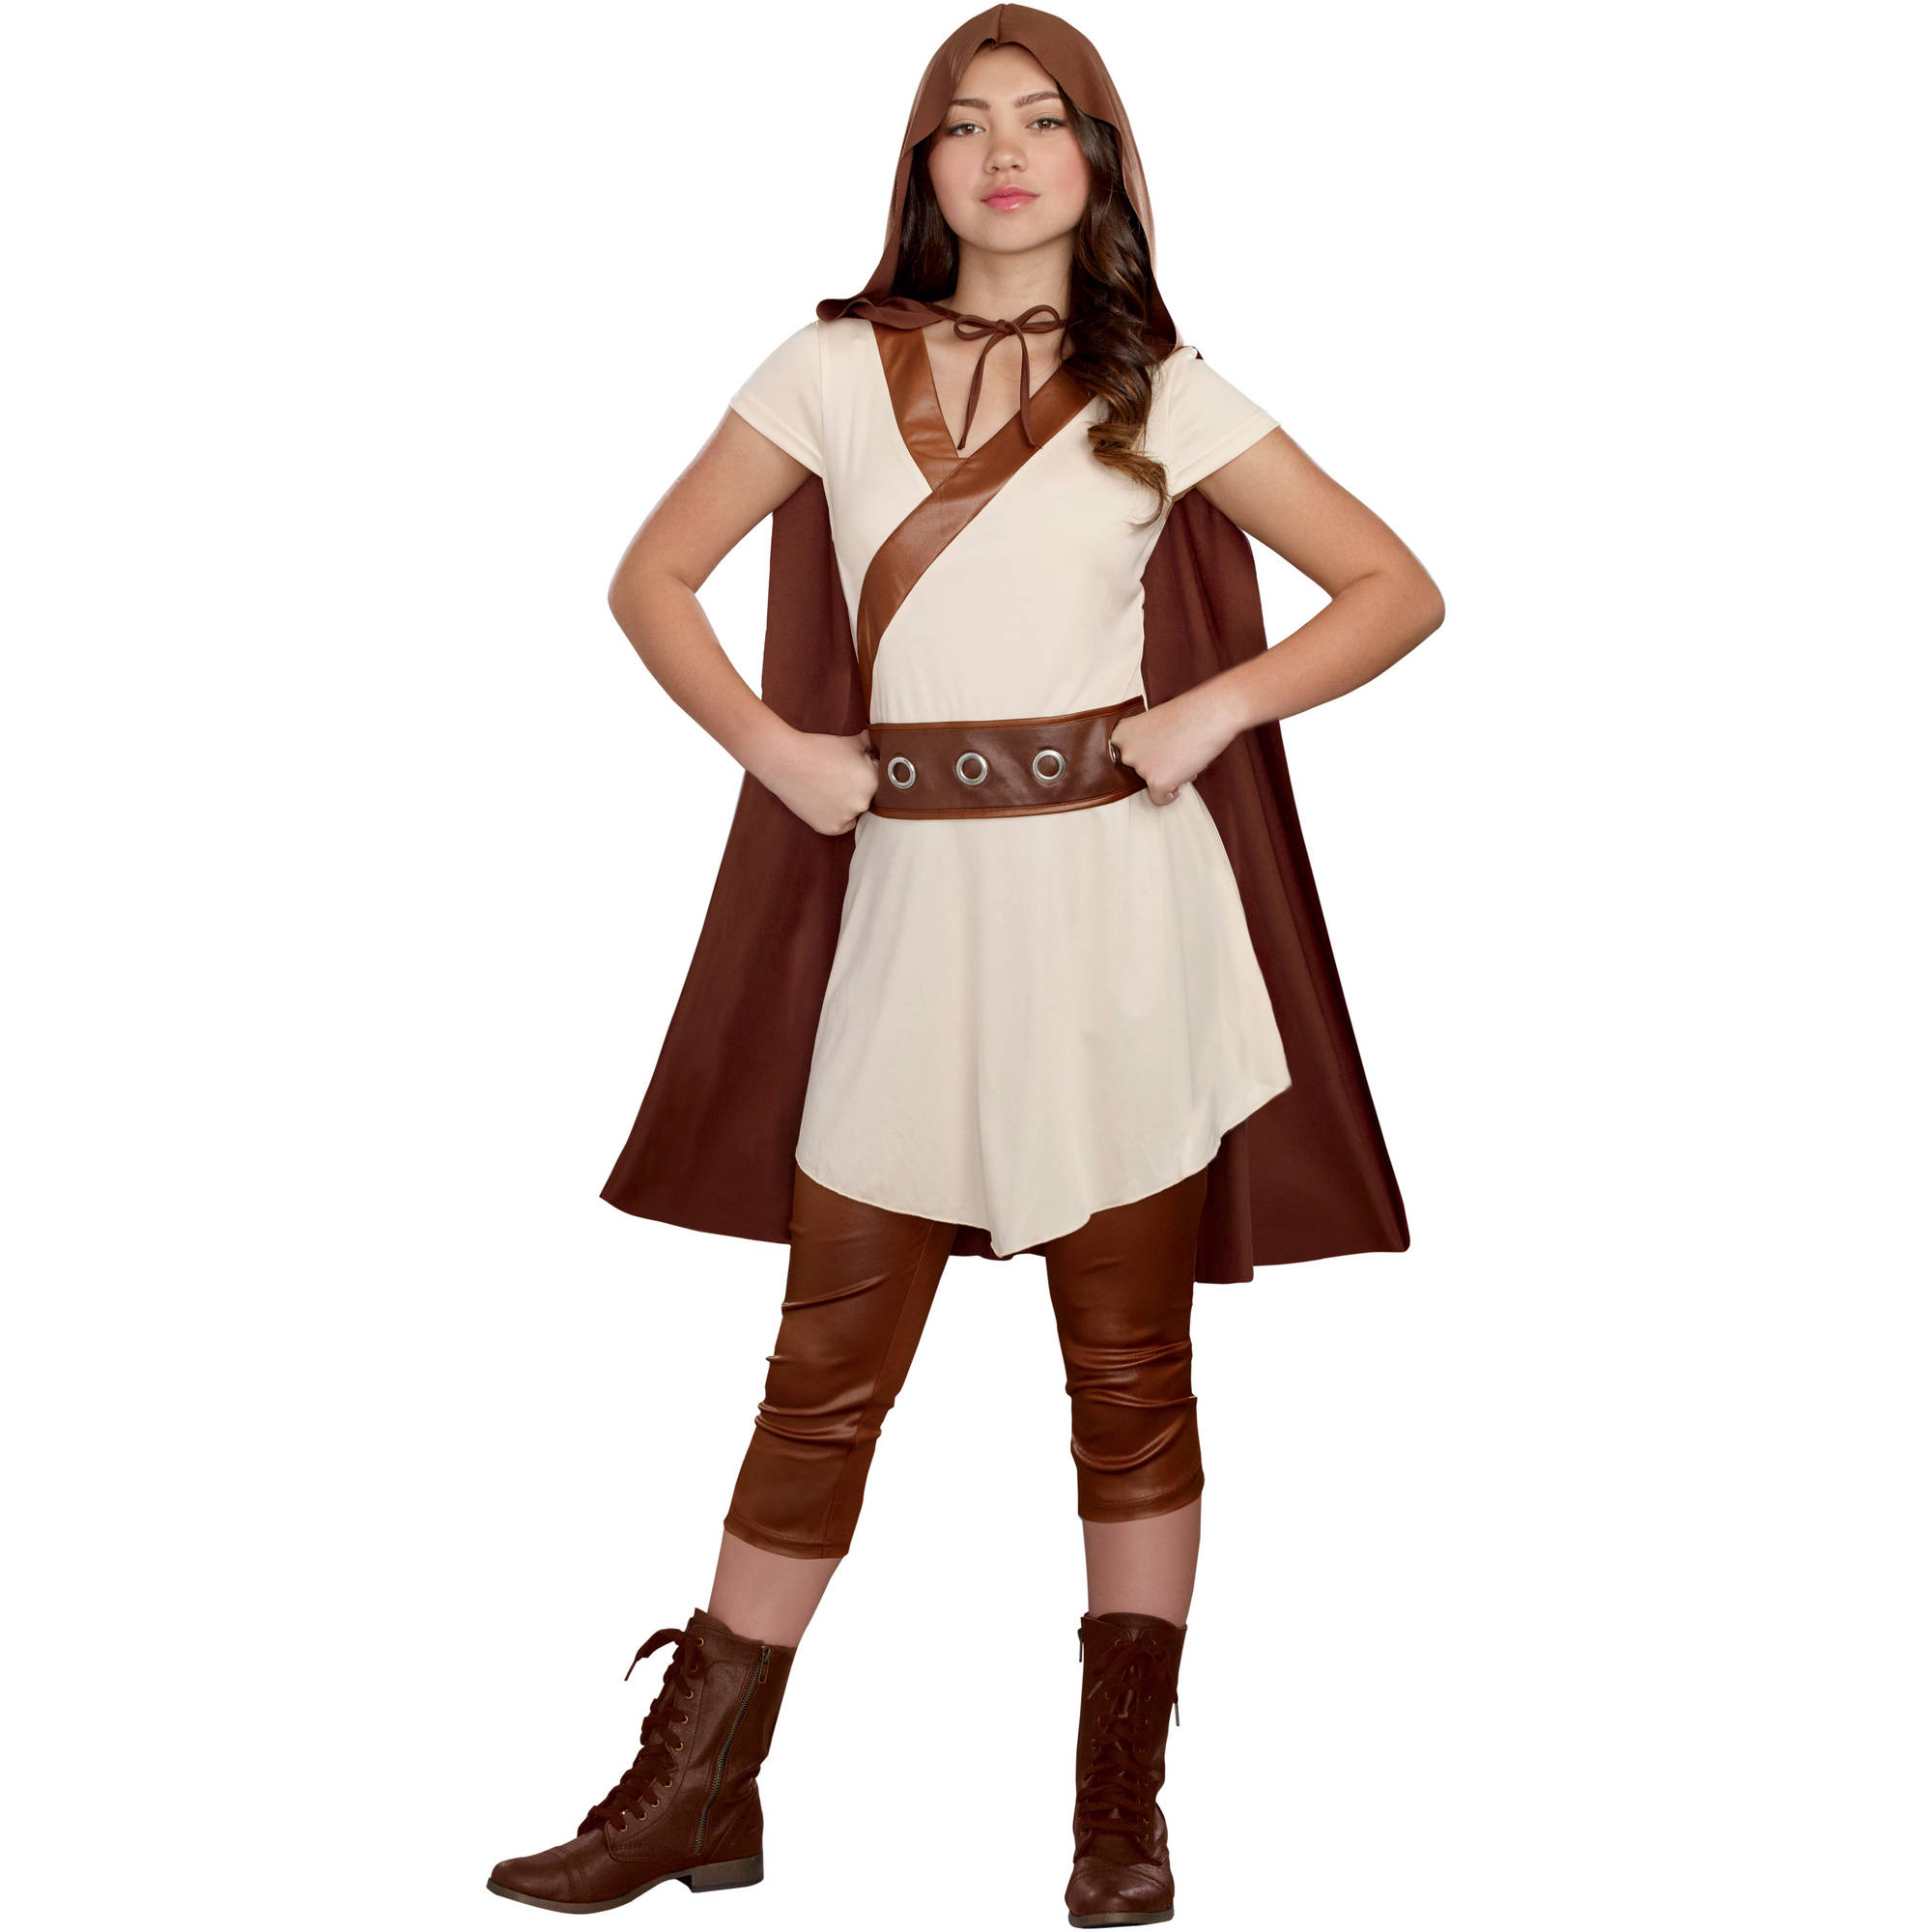 Desert Rebel Teen Girlsu0027 Halloween Costume Small  sc 1 st  Walmart & Desert Rebel Teen Girlsu0027 Halloween Costume Small - Walmart.com